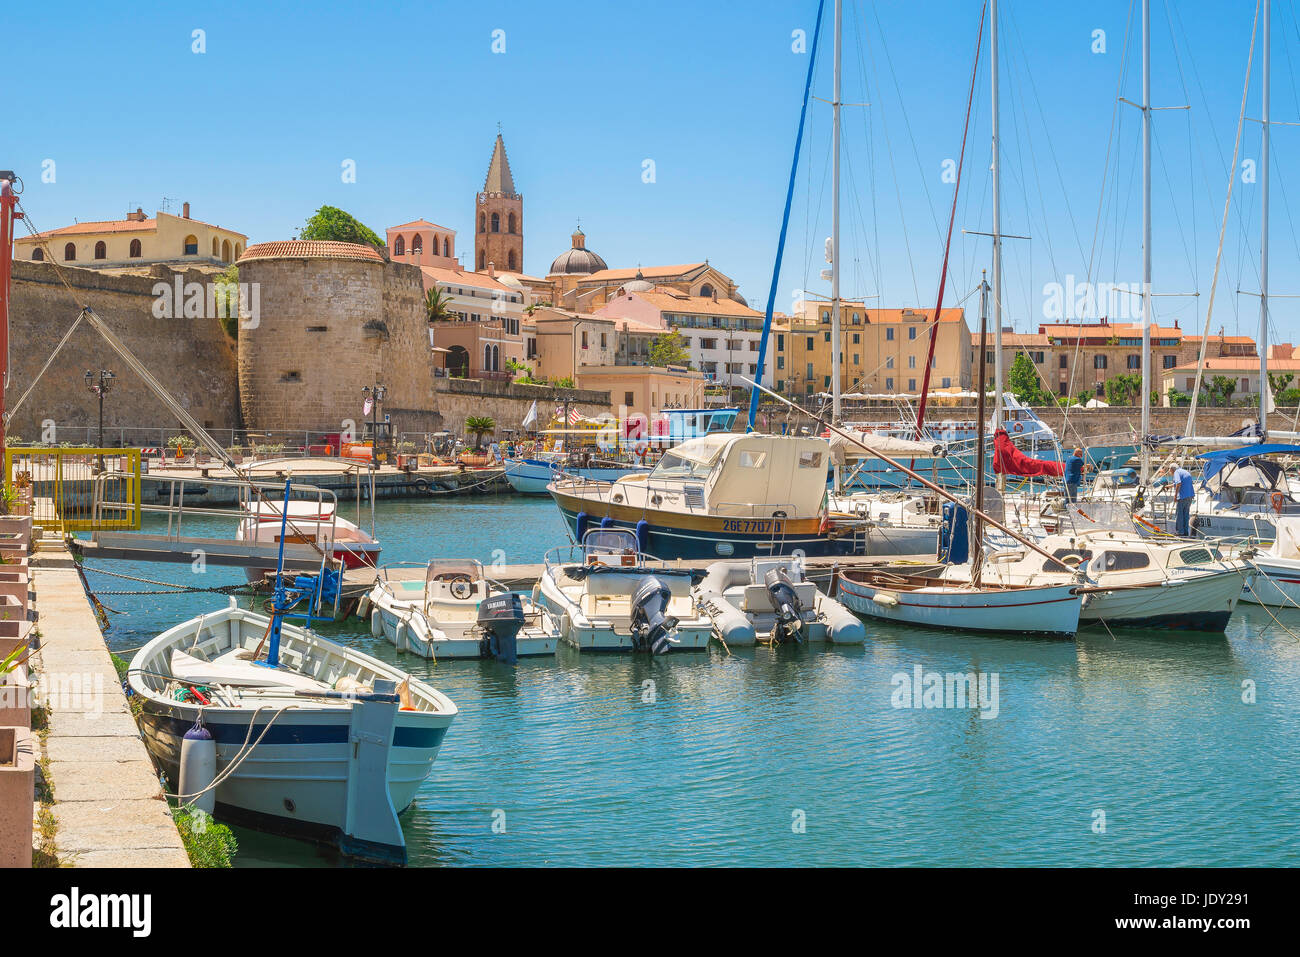 Alghero Sardinia port, view of the port and waterfront in Alghero northern Sardinia, Italy. - Stock Image